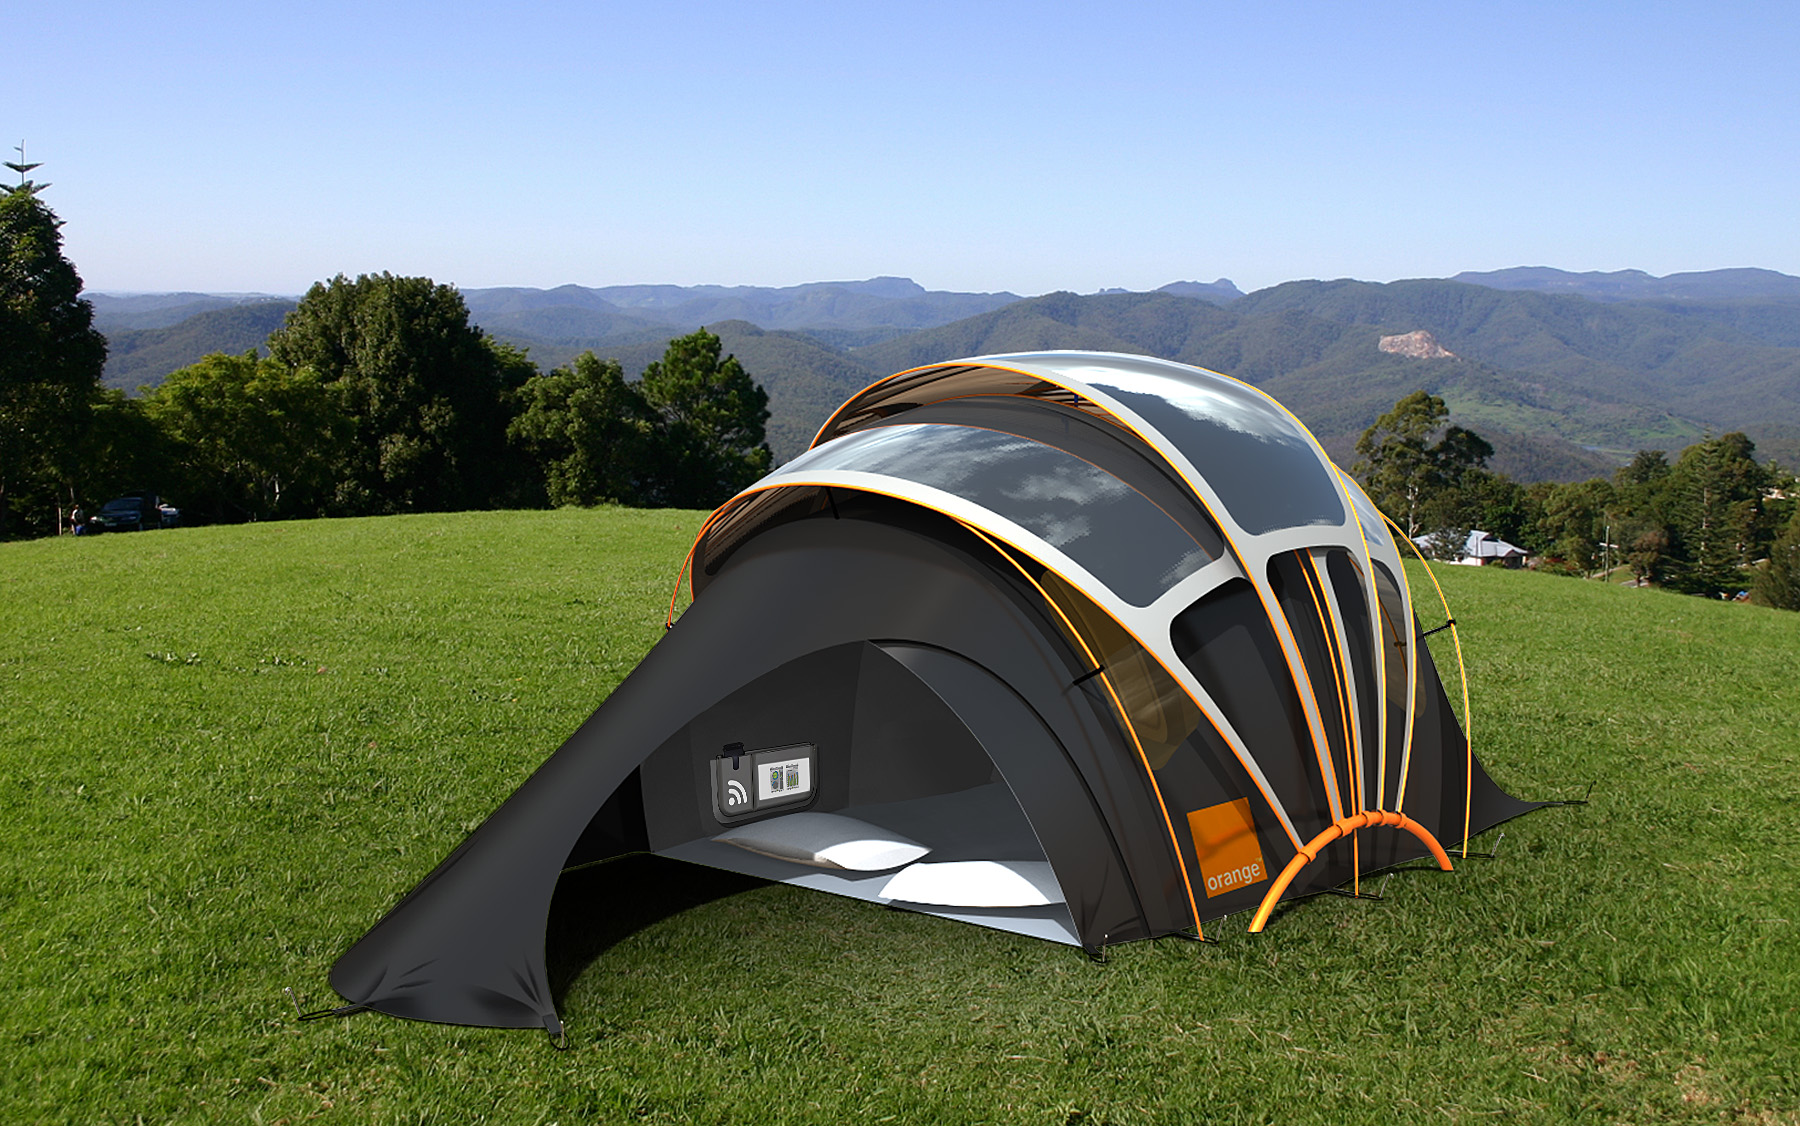 This 4-person solar tent is one of the ultimate green c&ing gadgets! Solar cells built into the tent gather energy during the day so you can charge ... : most amazing tents - memphite.com